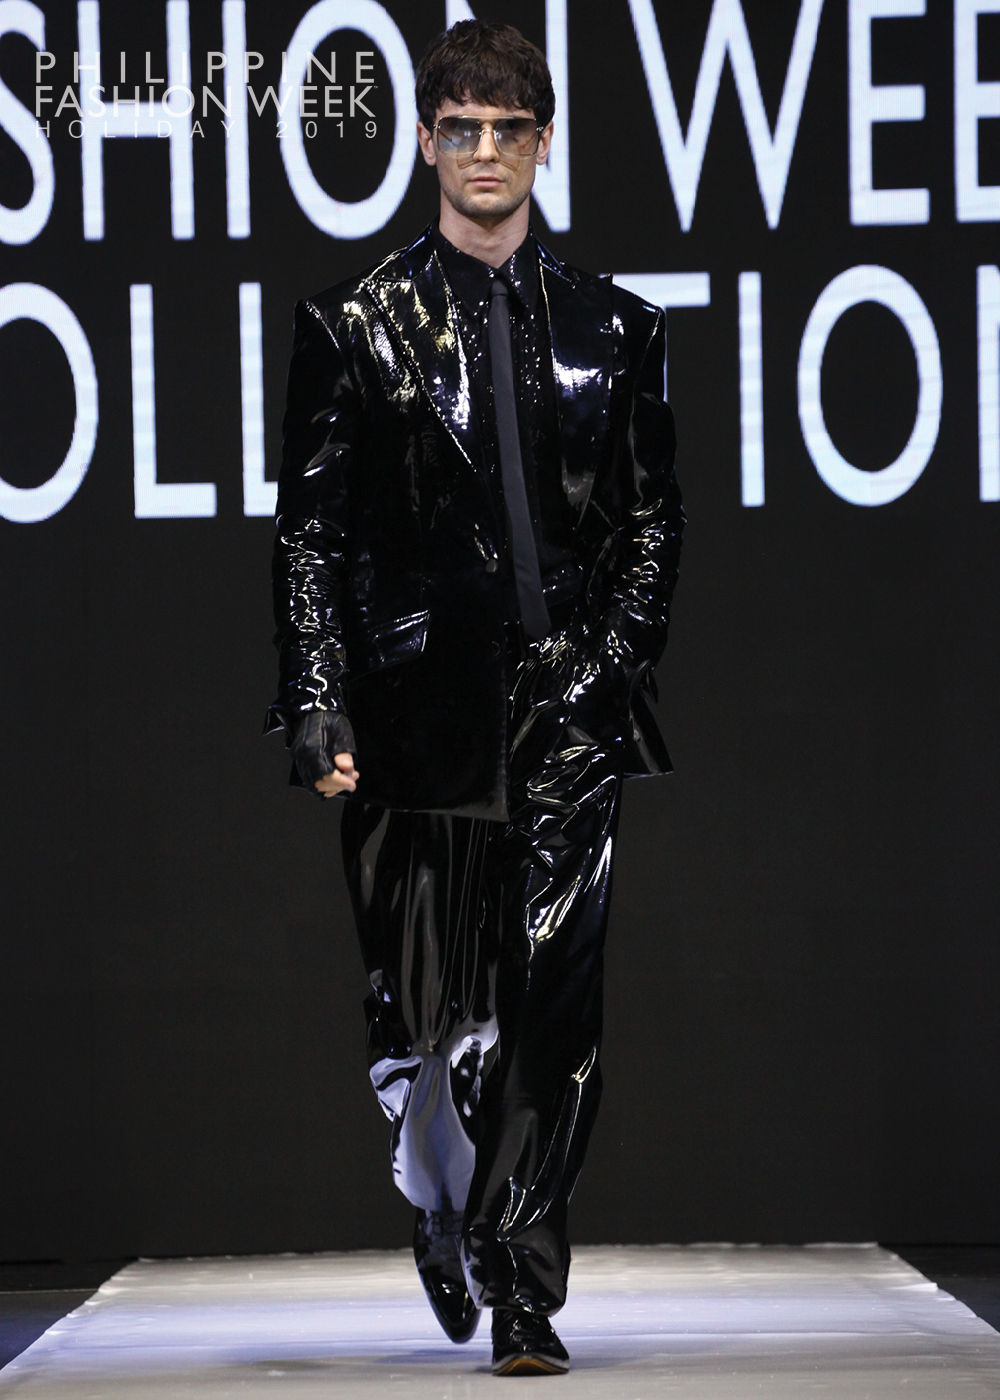 PhFW_collection show25.jpg